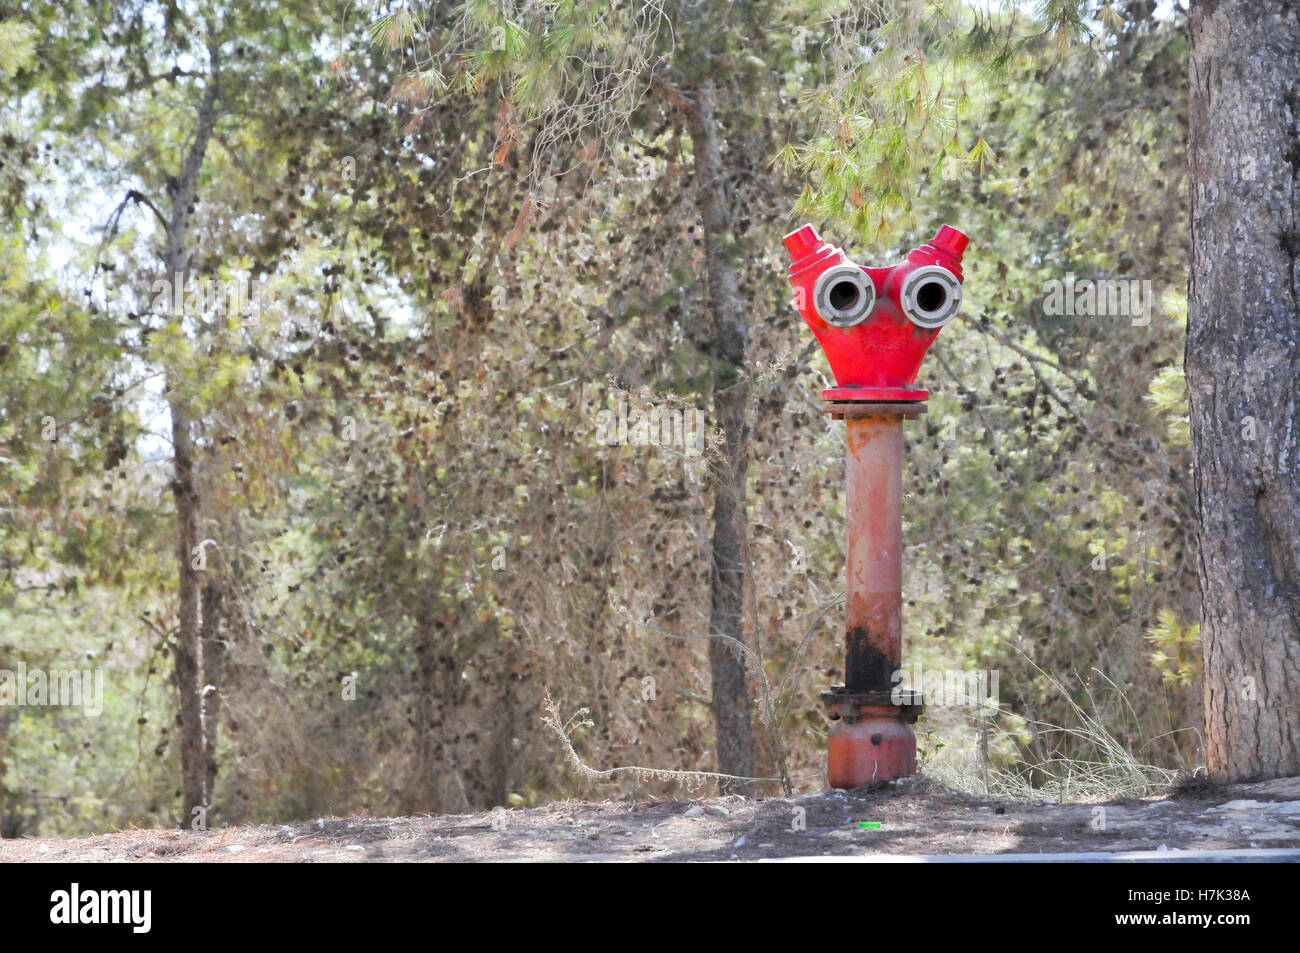 Red Fire hydrant in a pine tree forest - Stock Image